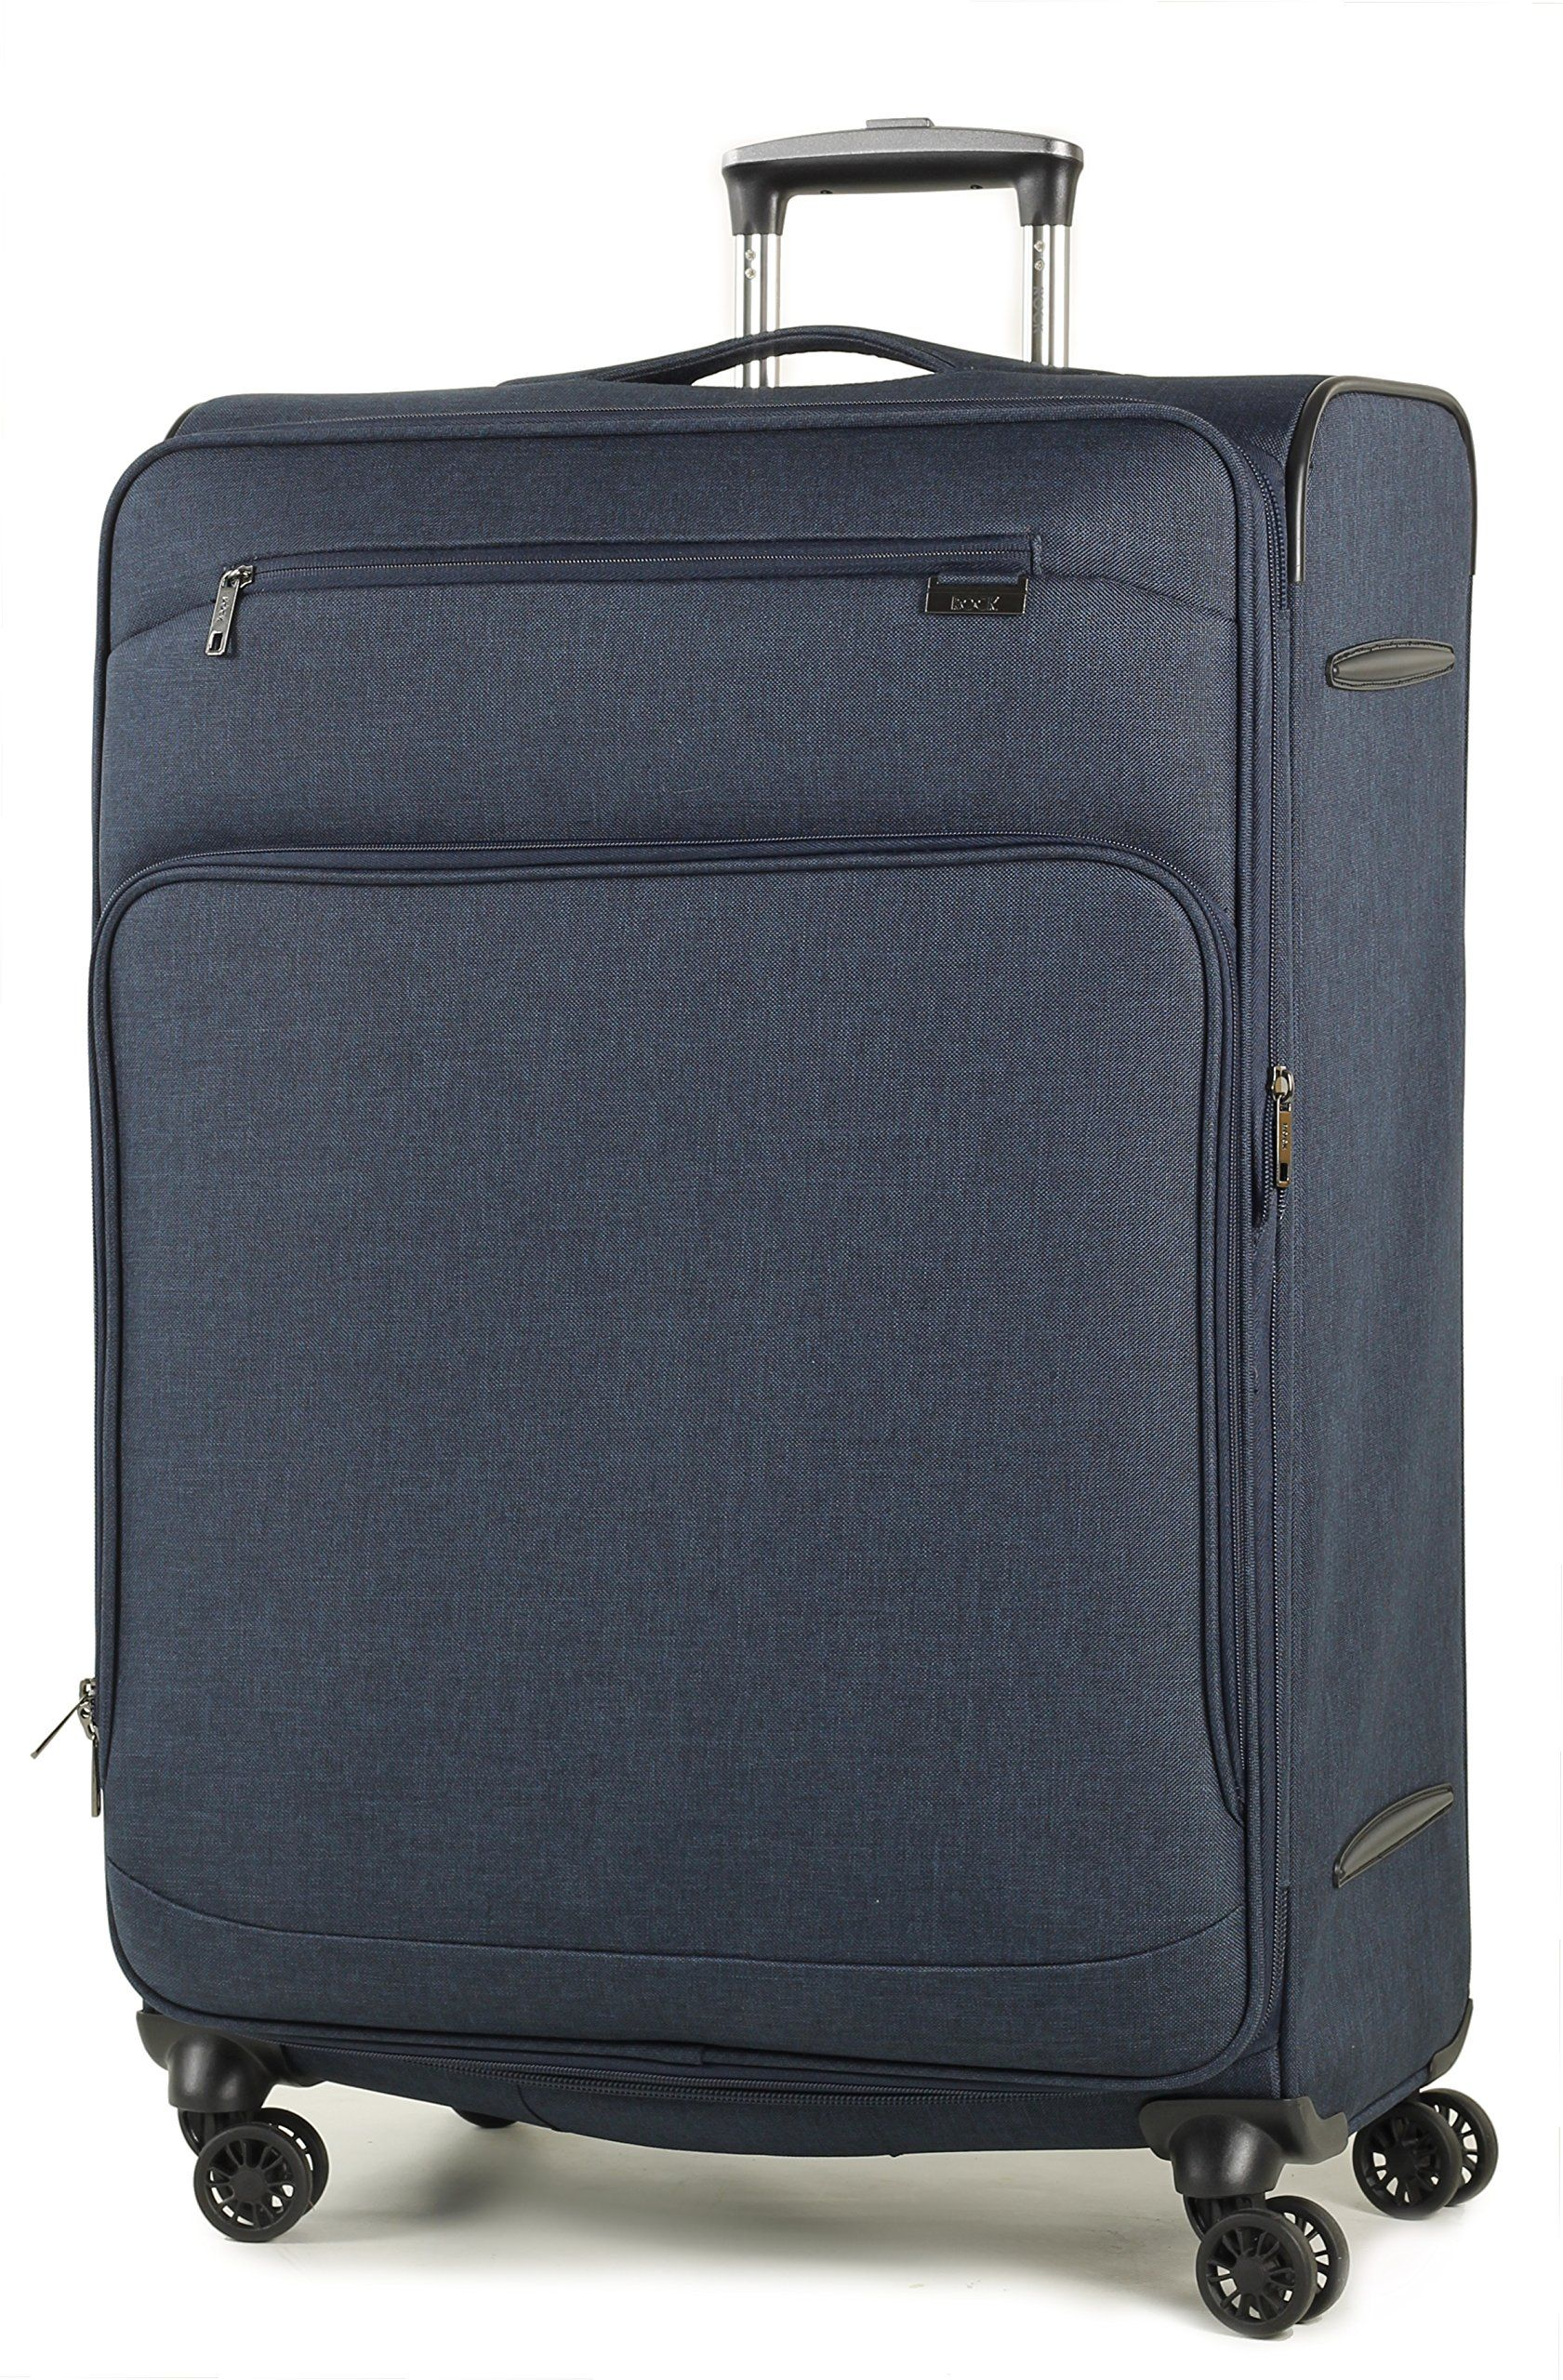 a0b78d99a Rock Madison Lightweight British Airways Cabin Luggage Expandable Four Wheel  Spinner Suitcases Smart denim look fabric